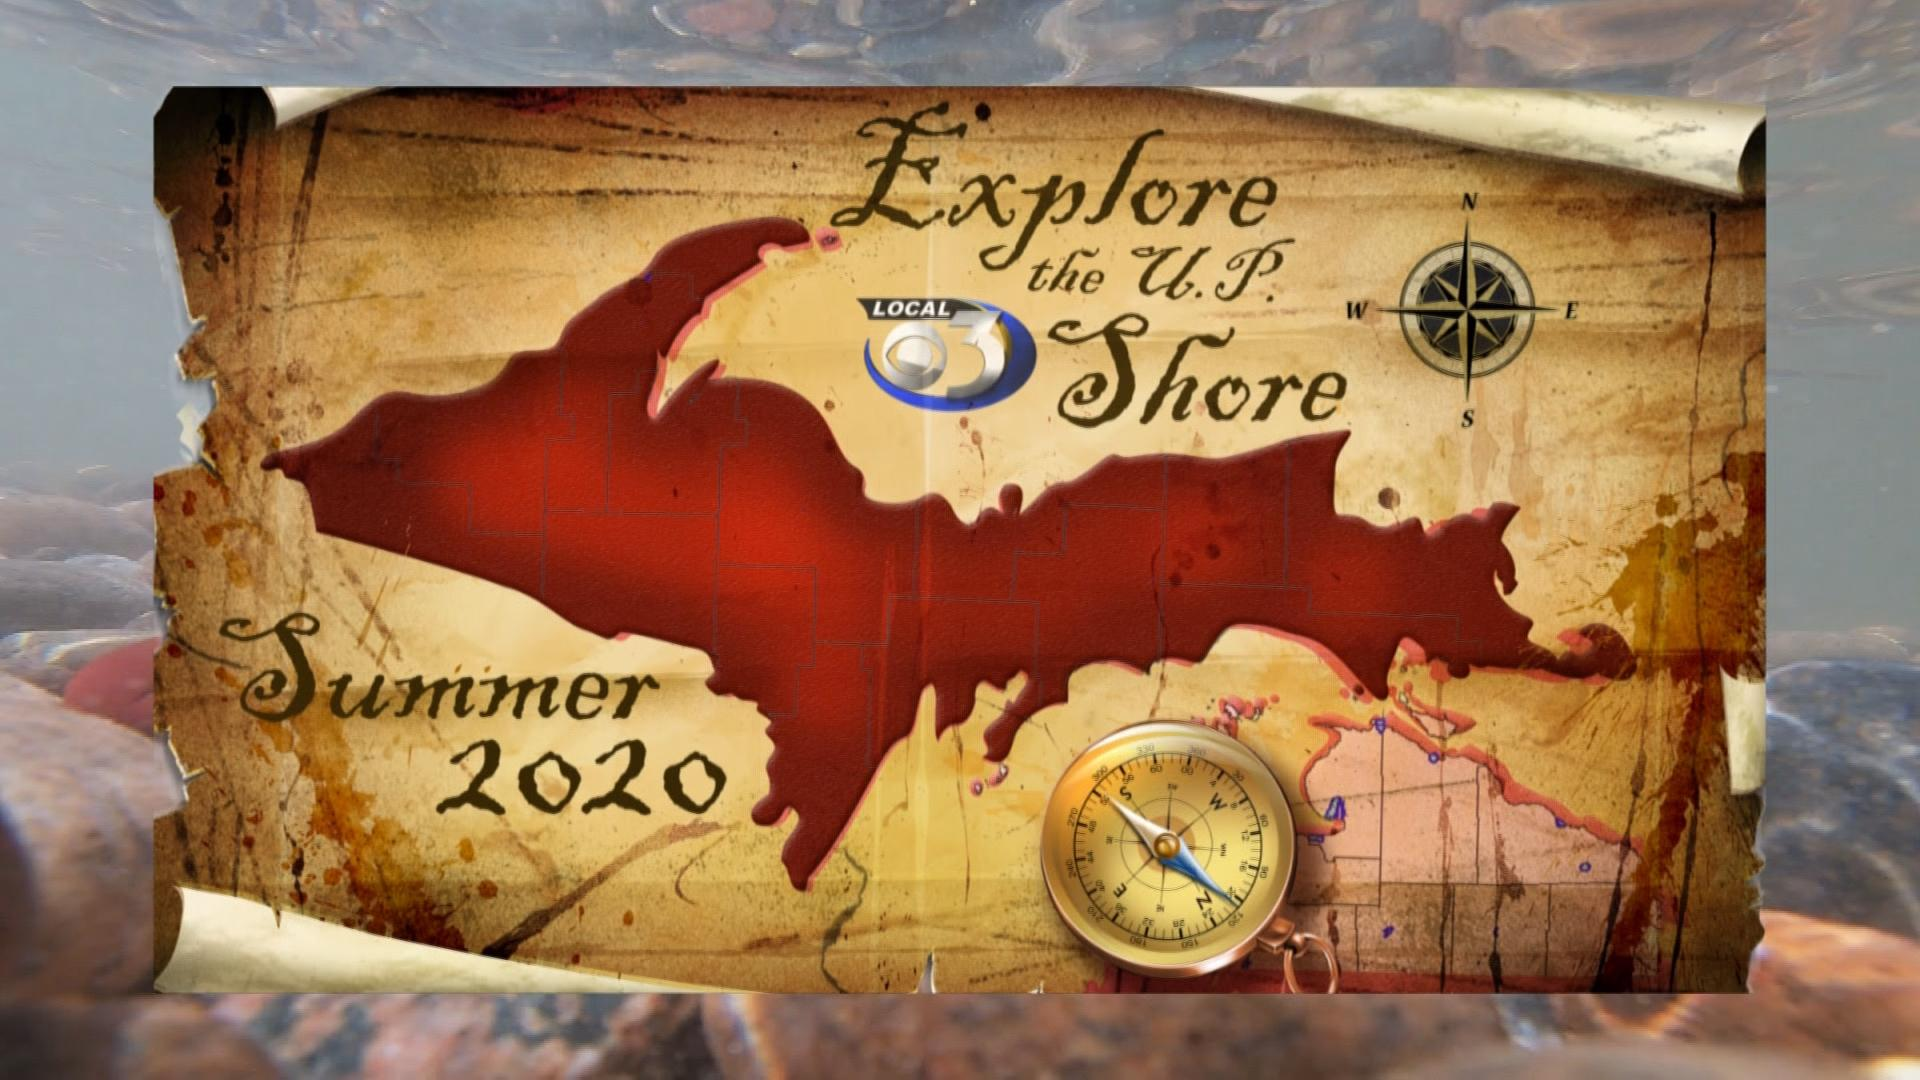 Explore the U.P. Shore Summer 2020